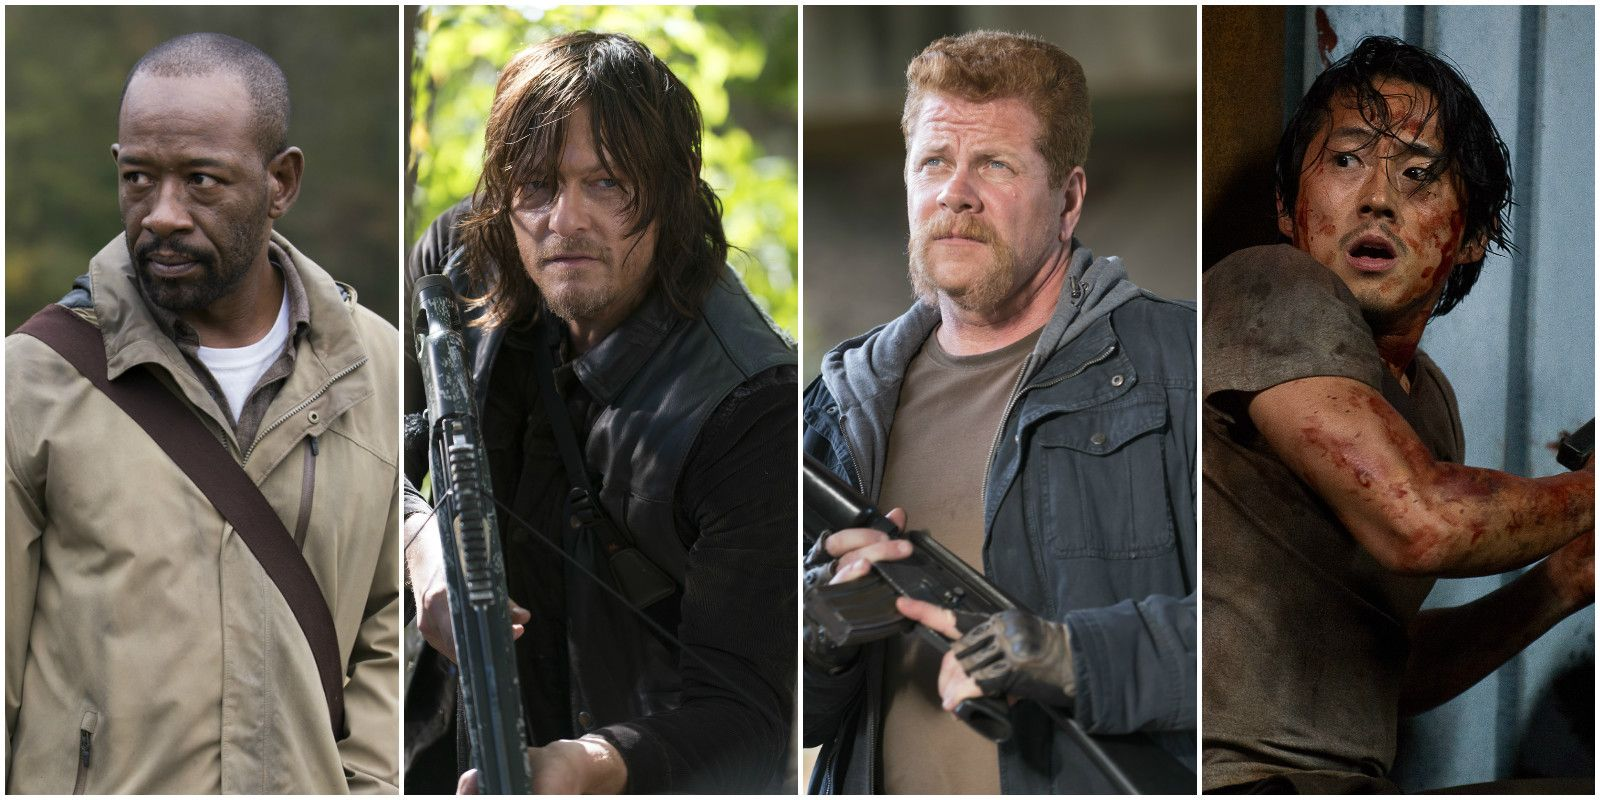 The Walking Dead: Morgan / Daryl / Abraham / Glenn